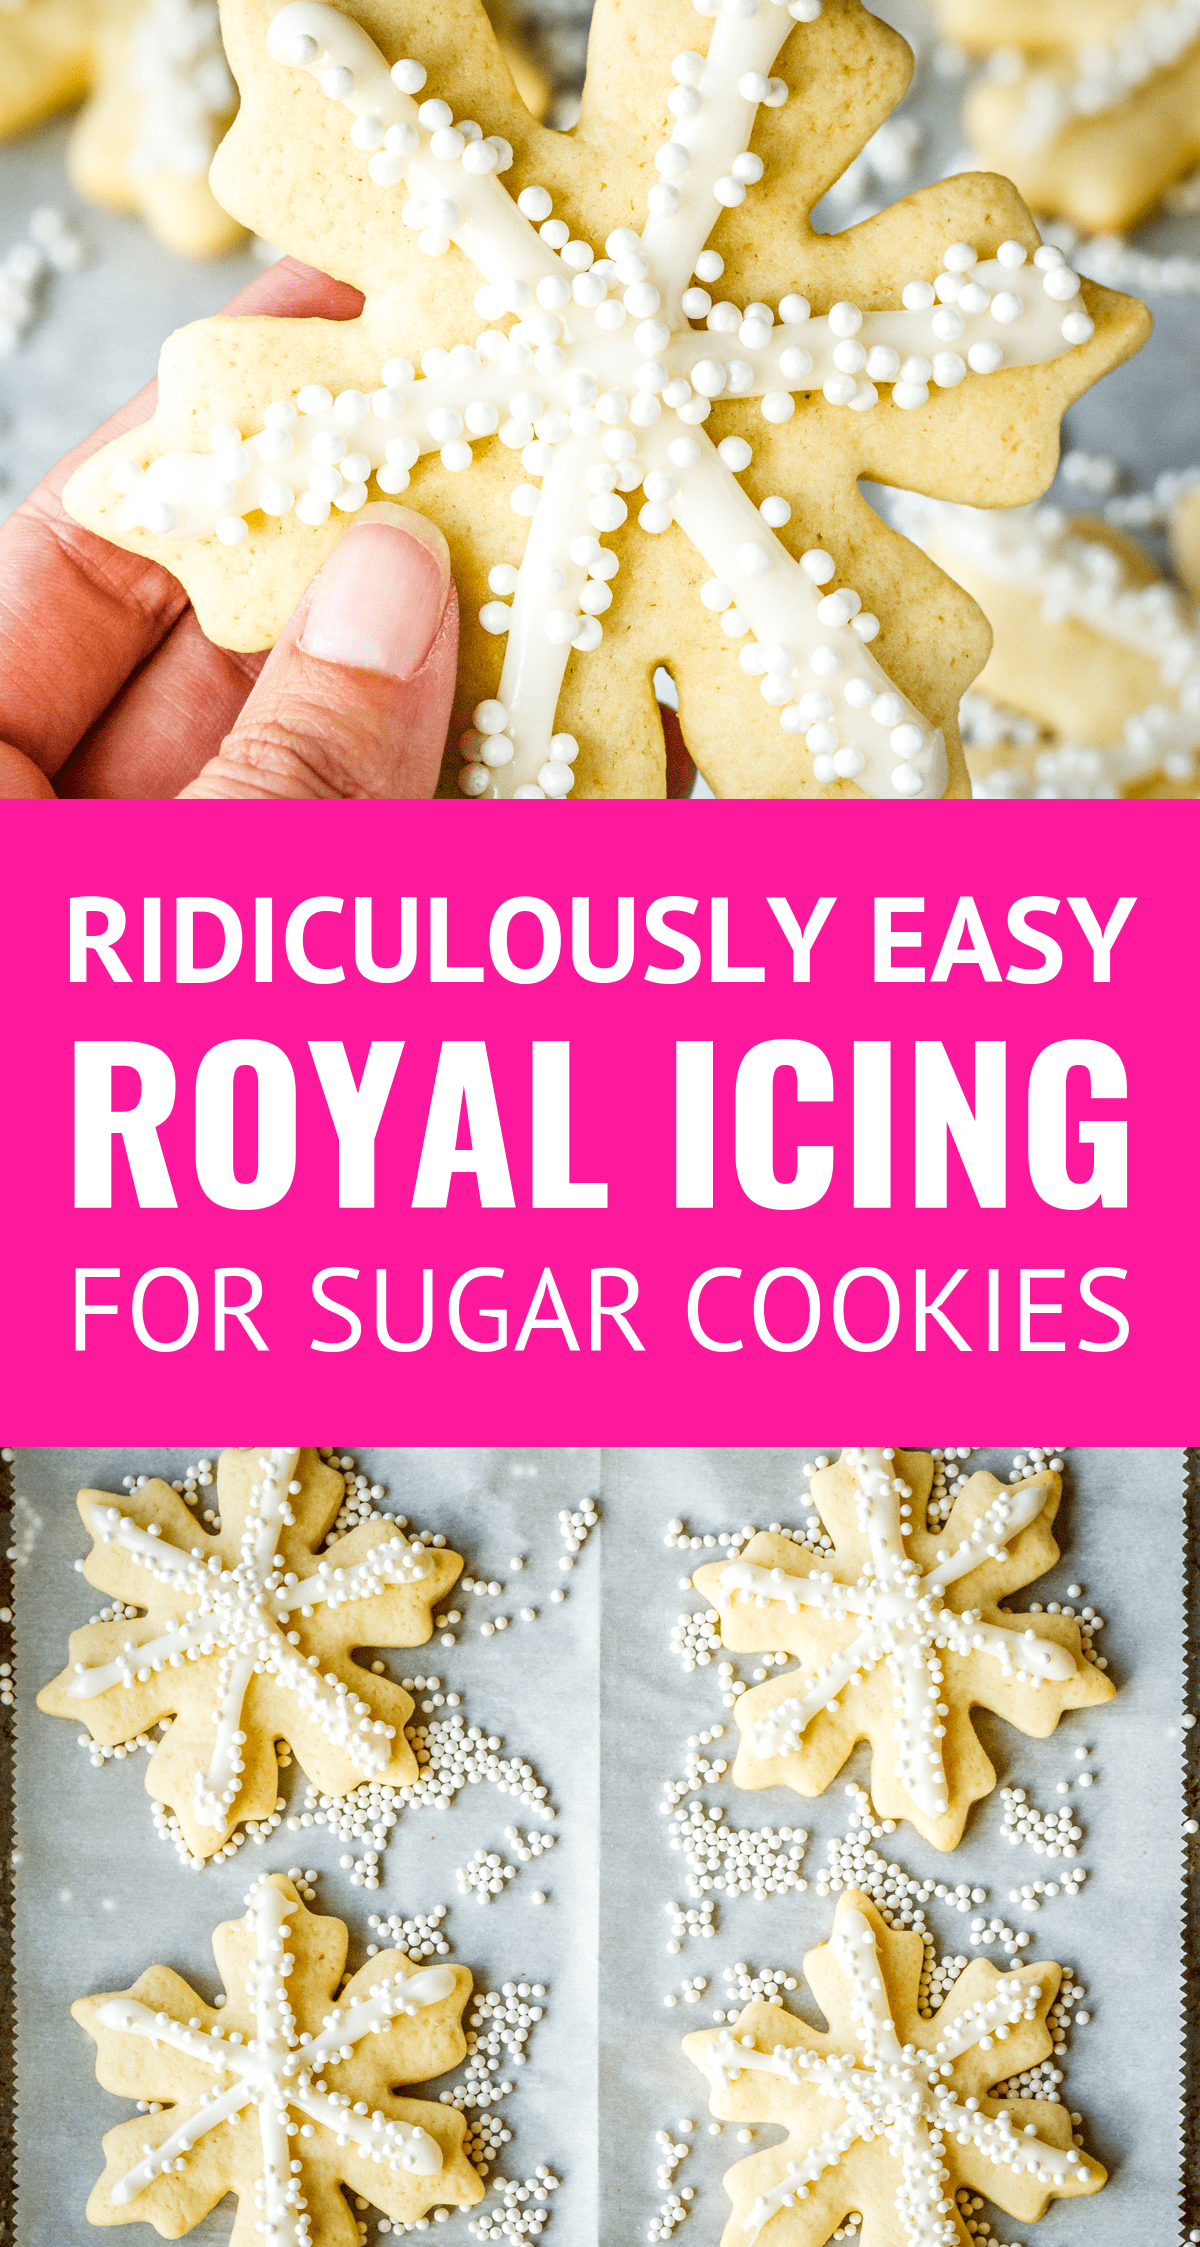 Ridiculously Easy Royal Icing Recipe For Sugar Cookies – Unsophisticook #christmasicingrecipe